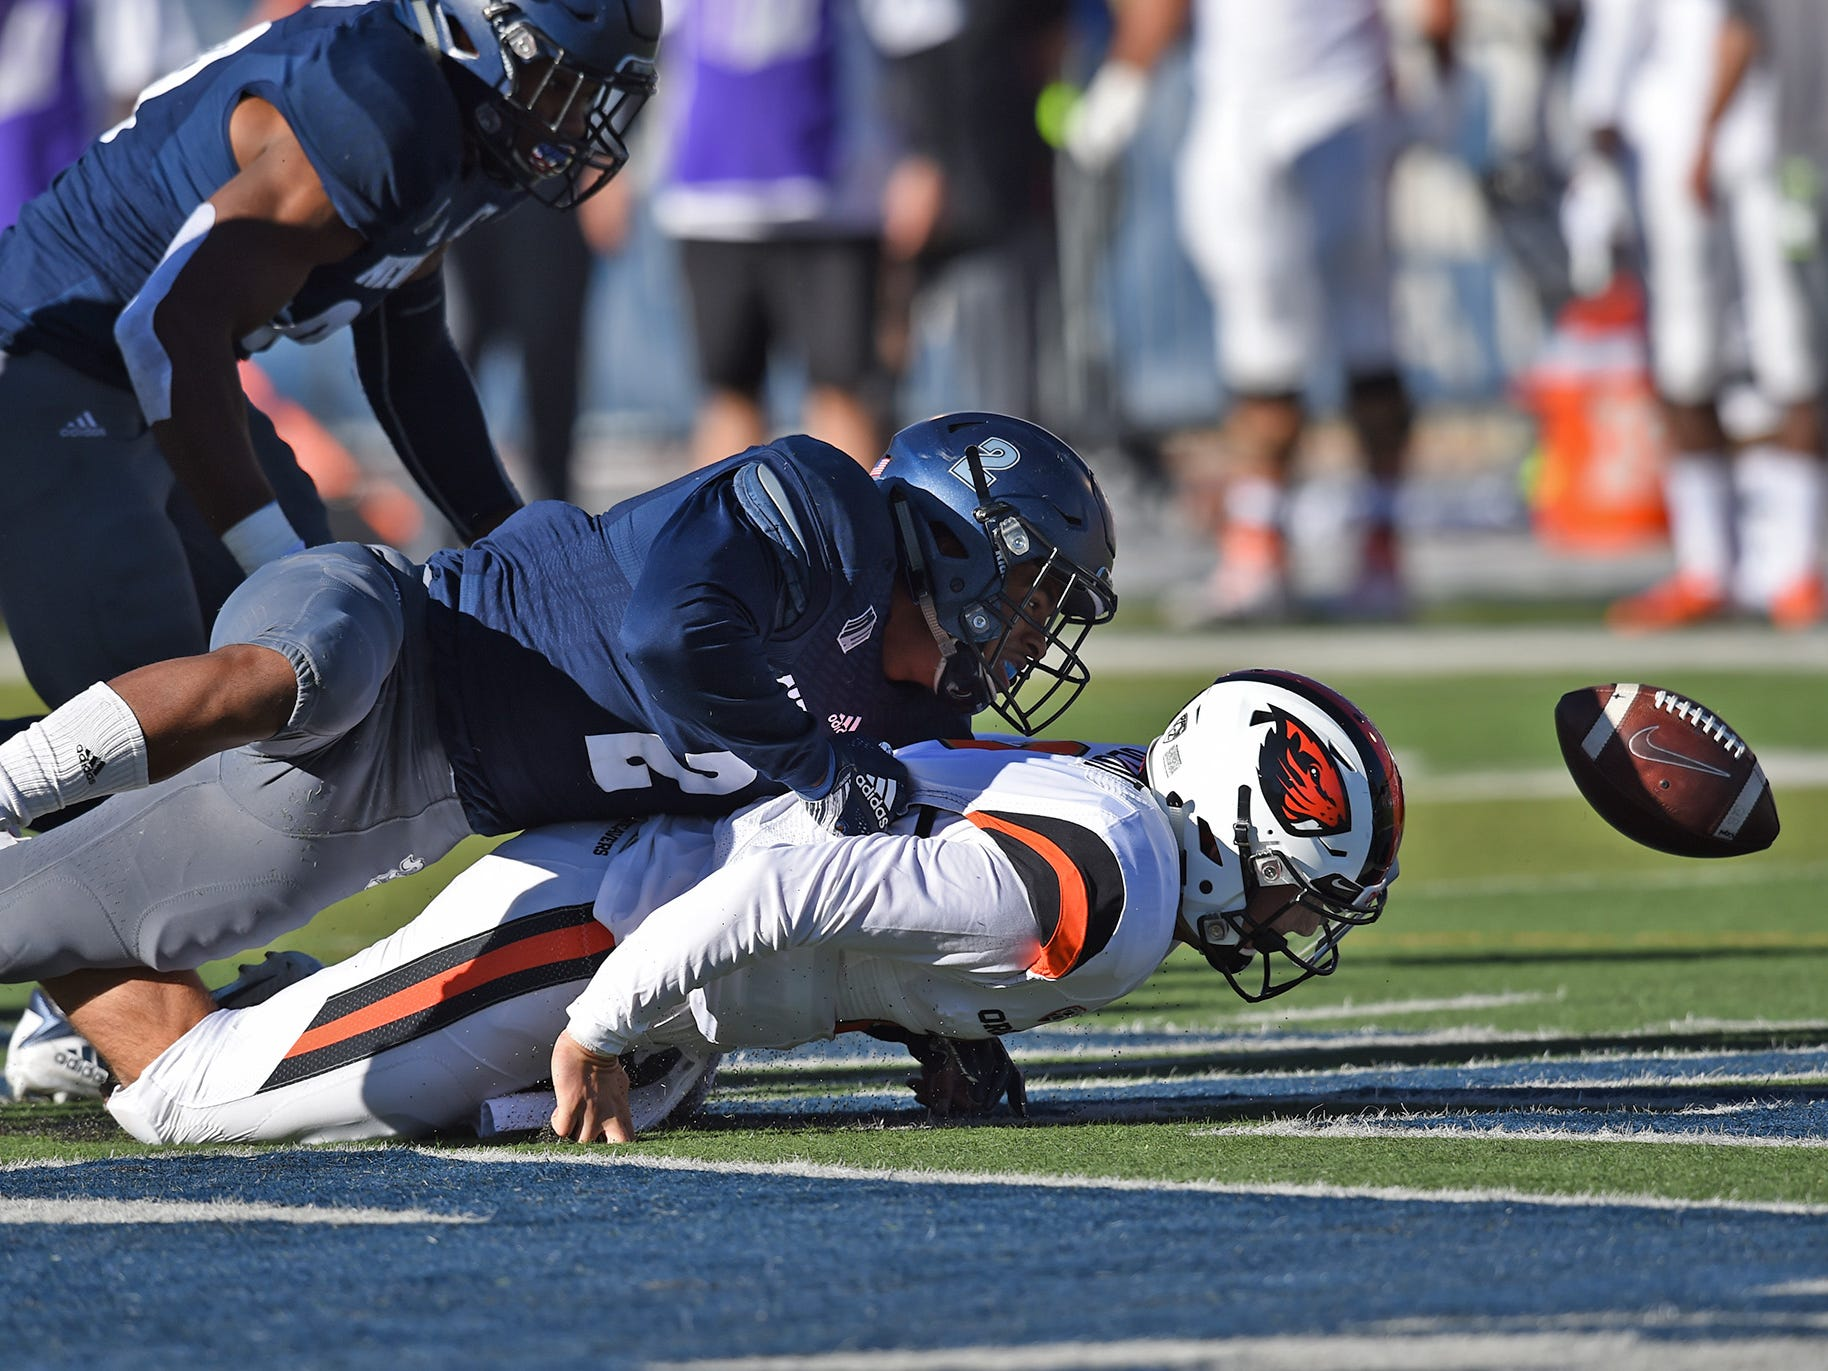 Nevada DB Asauni Rugus forces Oregon State quarterback Conor Blount to fumble the ball at Mackay Stadium on Sept. 15, 2018.